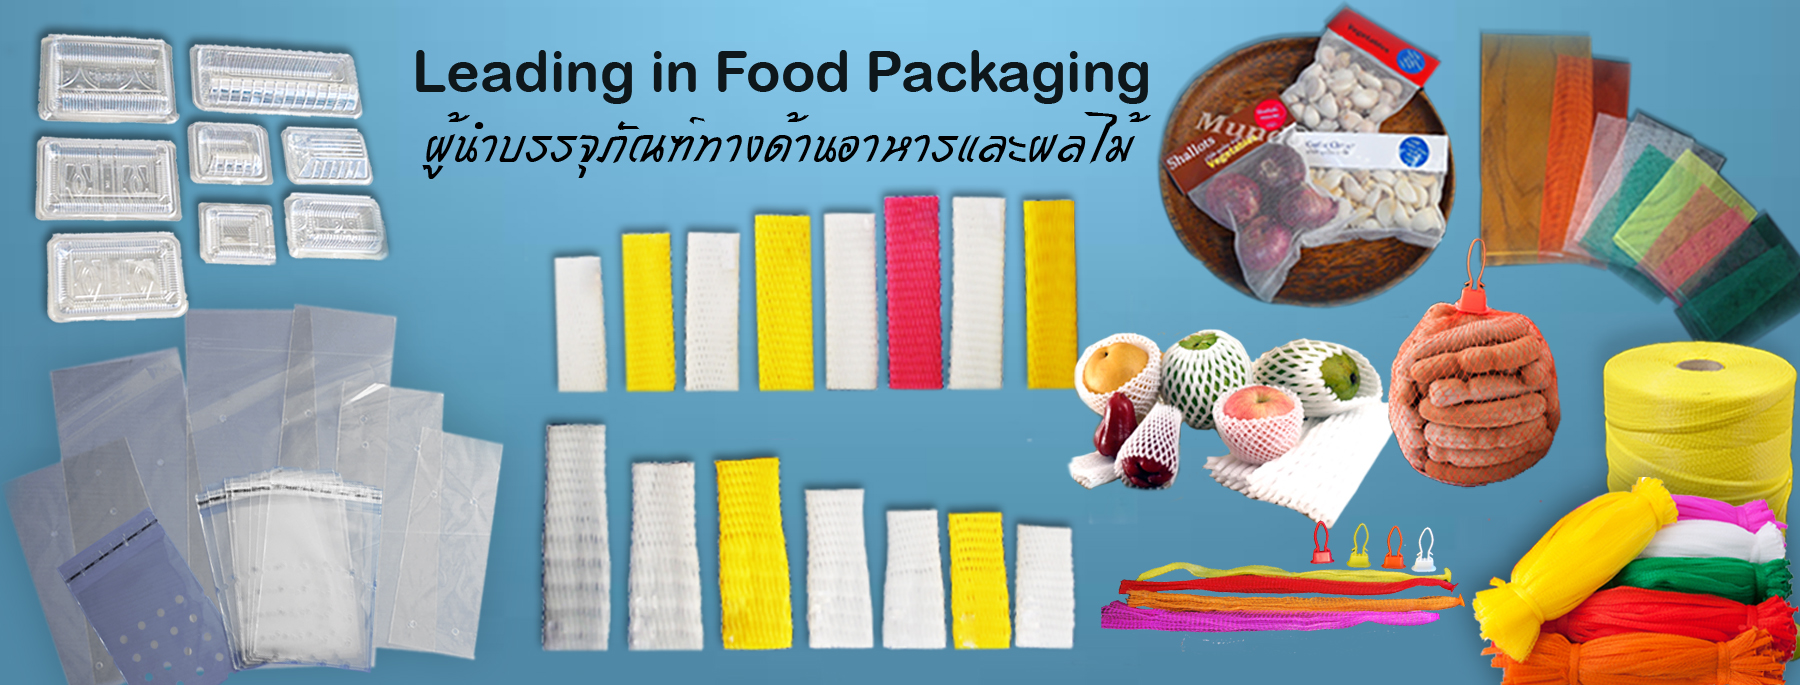 Leading in Food PackagingTH